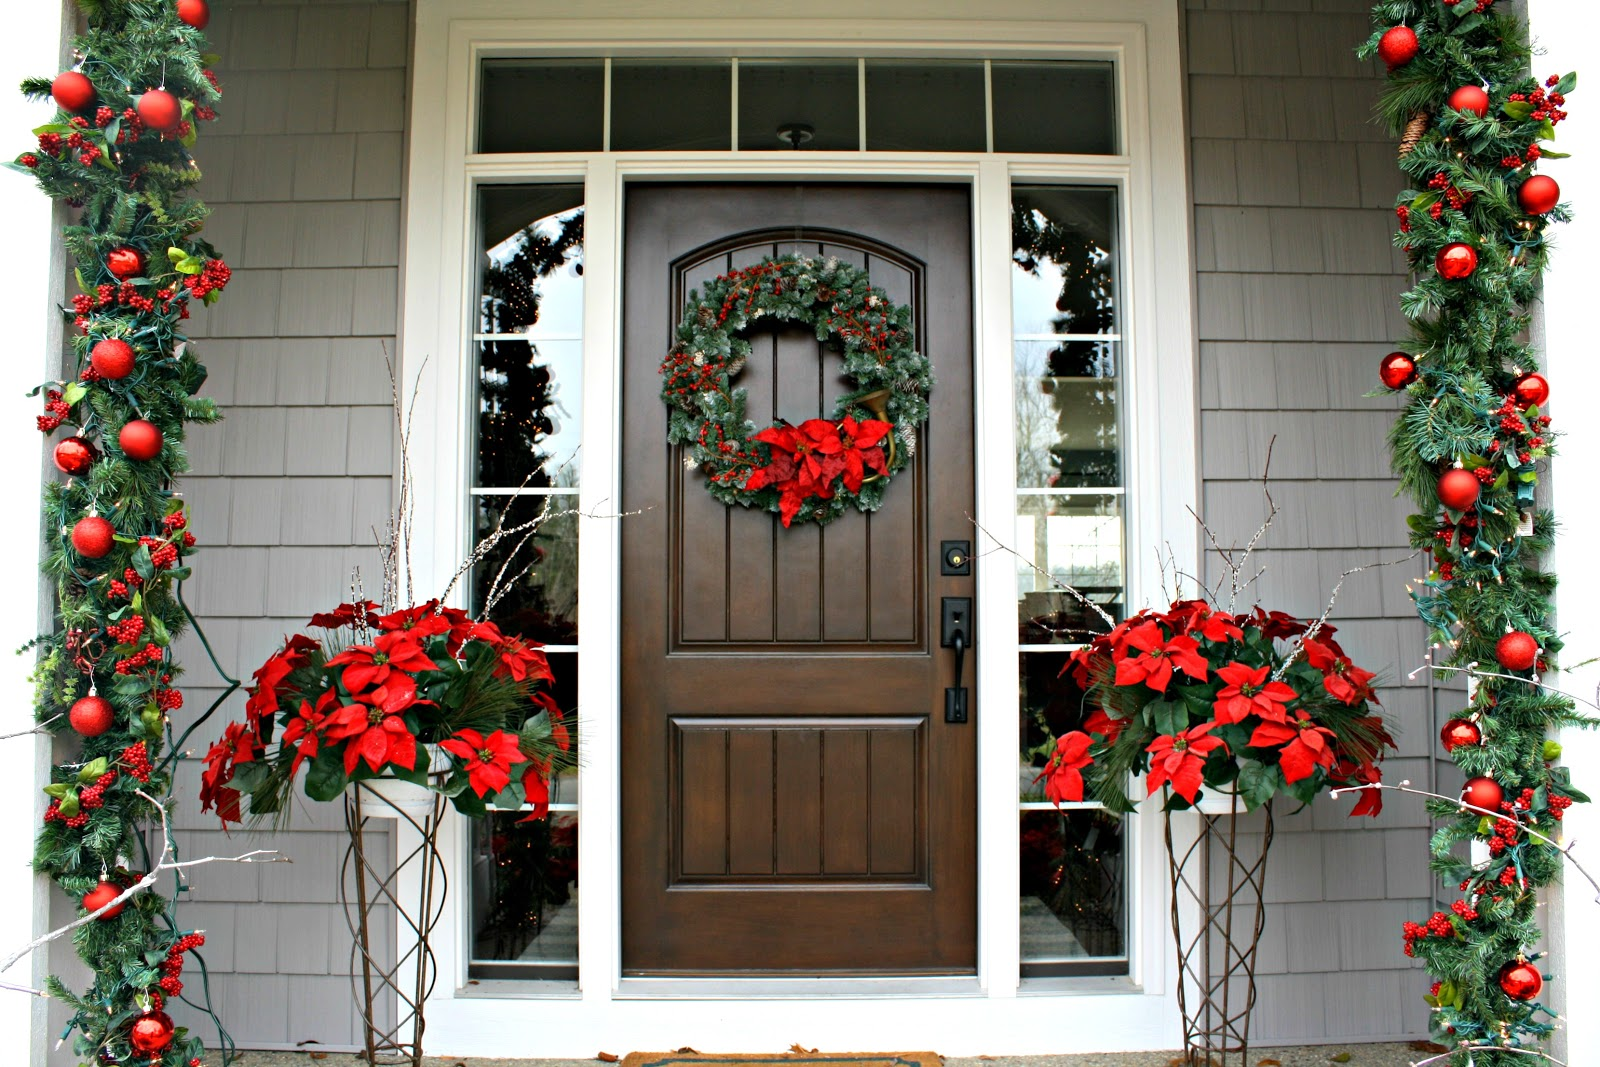 holiday home tour - Christmas Column Decorations